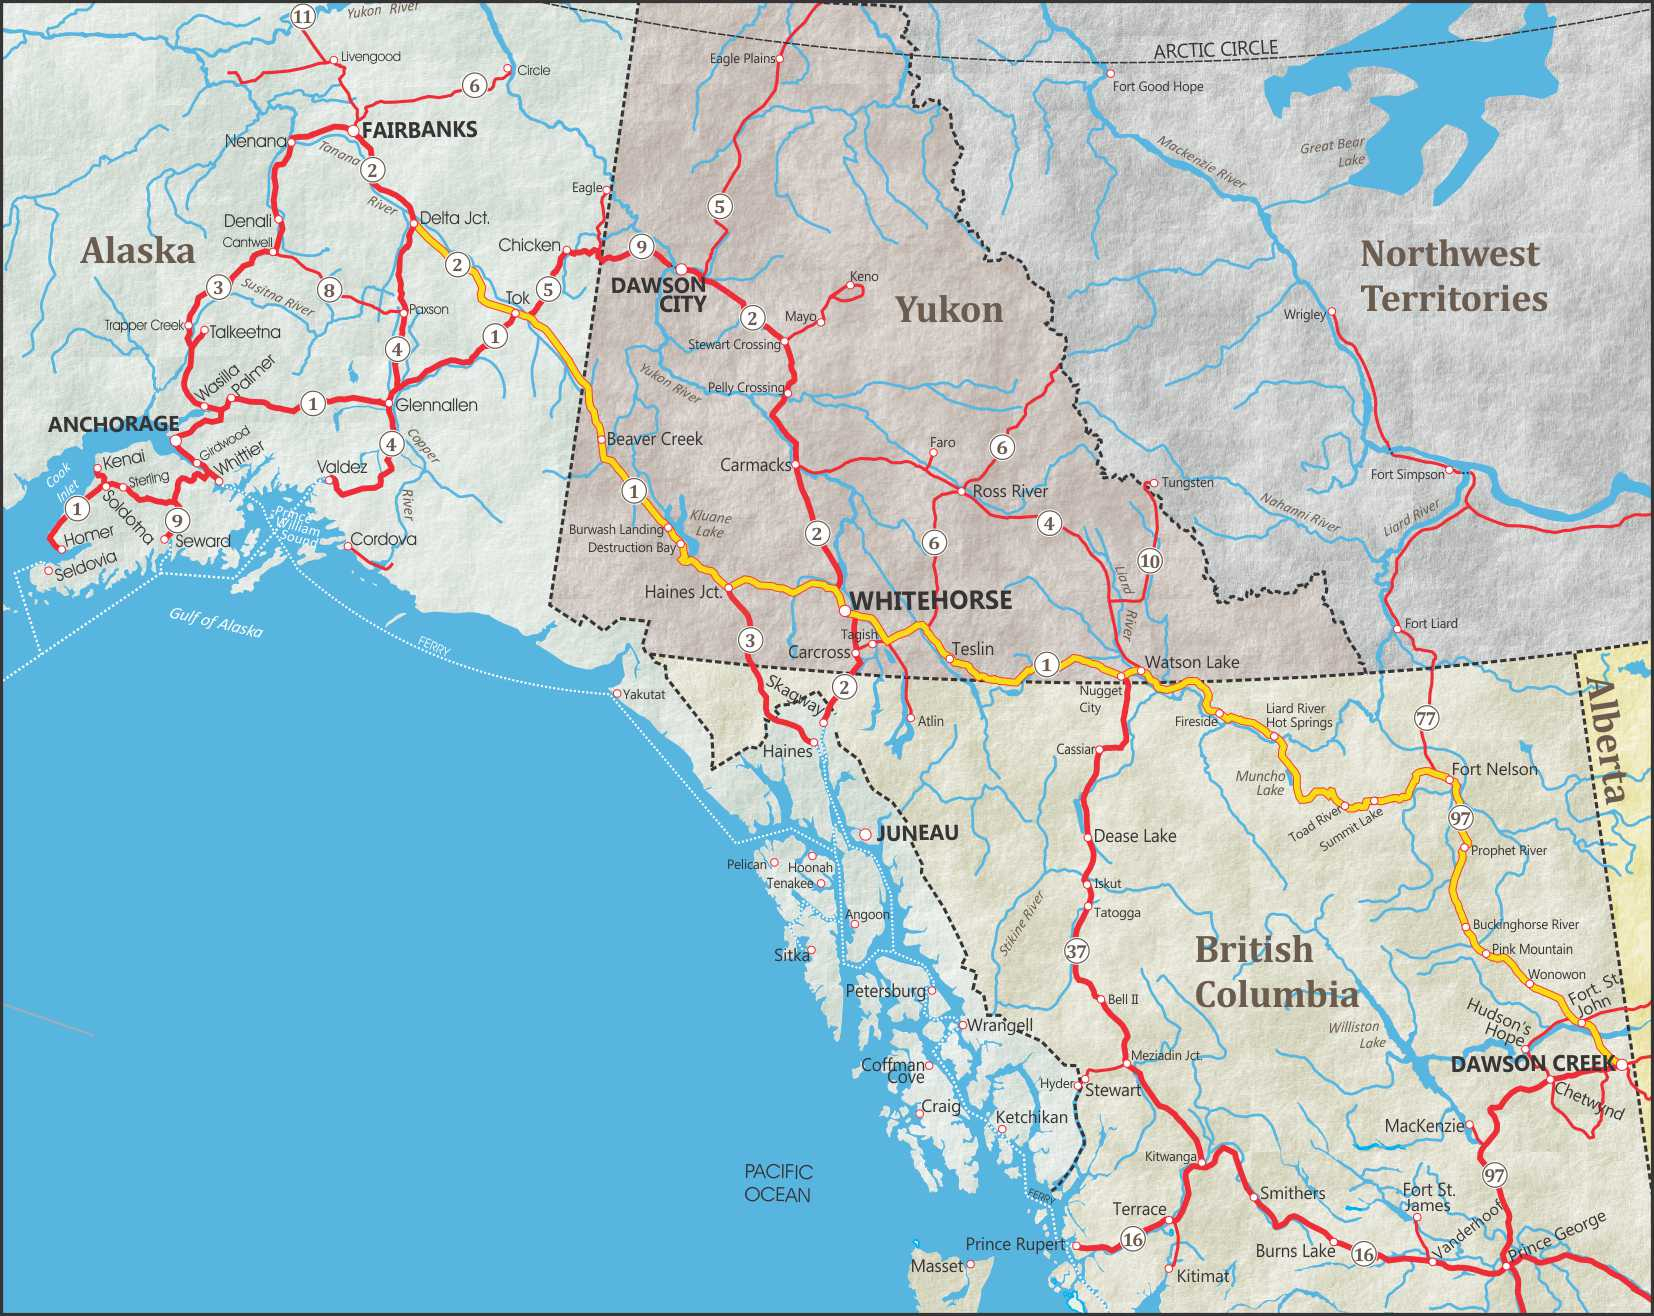 Alaska Maps Of Cities, Towns And Highways - Printable Road Map Of Canada